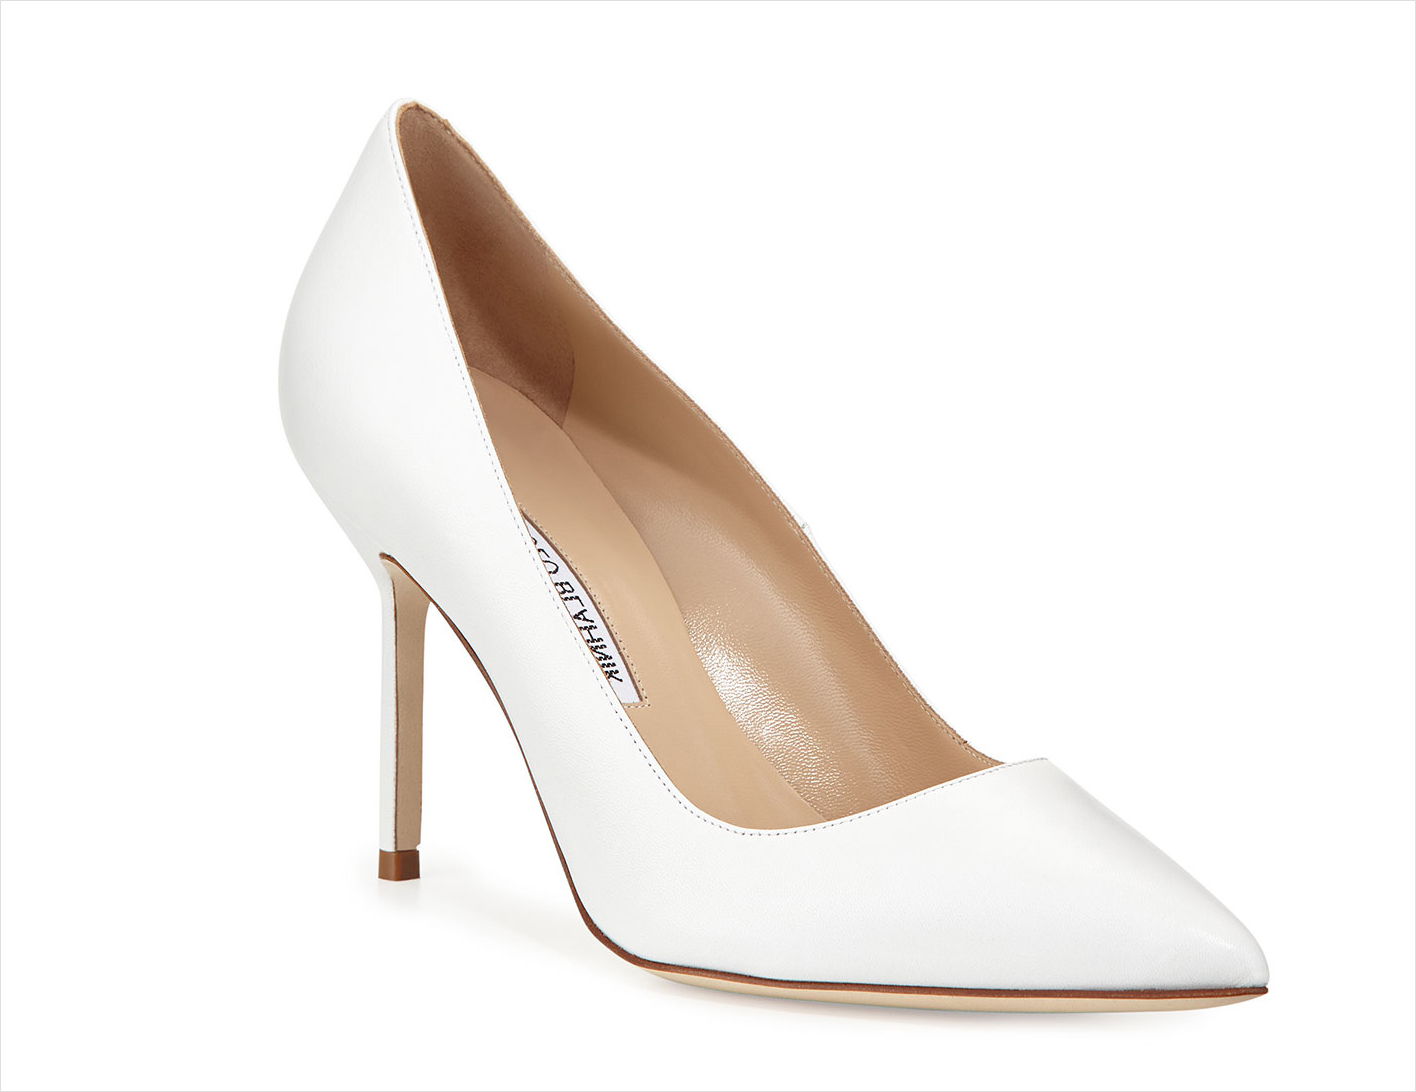 17d1bbde254235 Nordstrom BB pointed toe pump Manolo Blahnik white wedding heels shoes ""